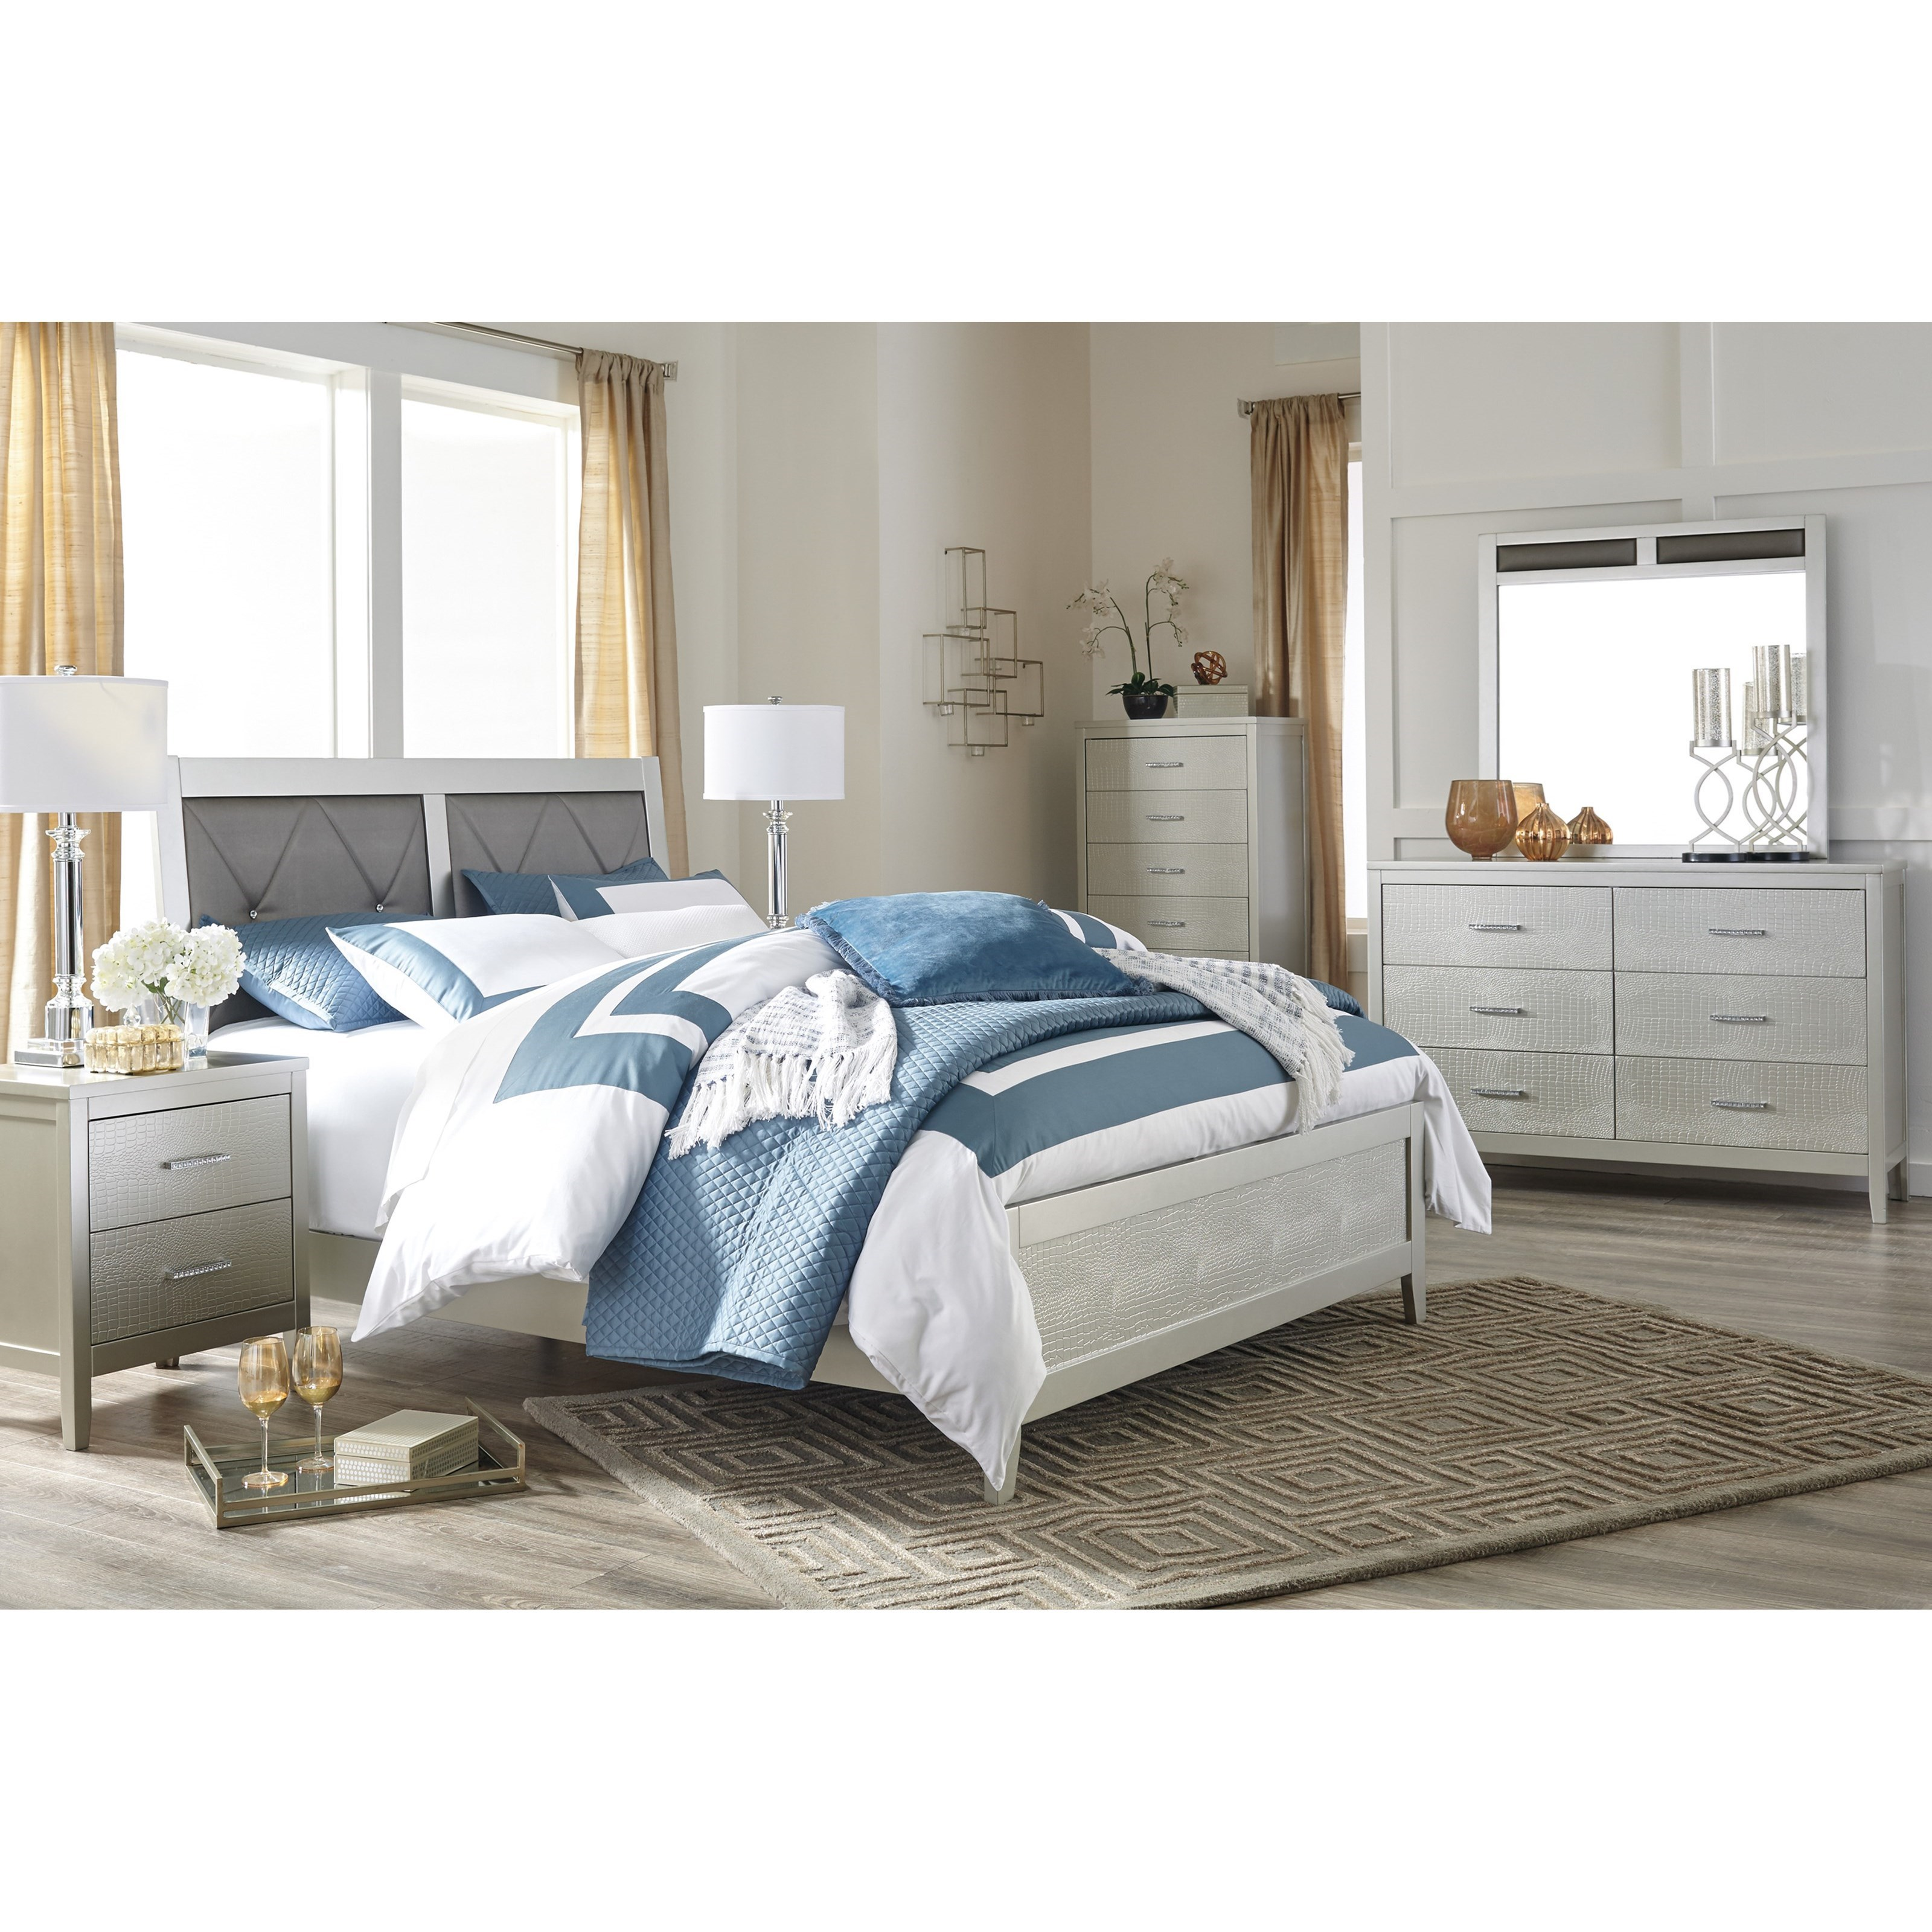 Olivet Queen Bedroom Group by Signature Design by Ashley at Northeast Factory Direct